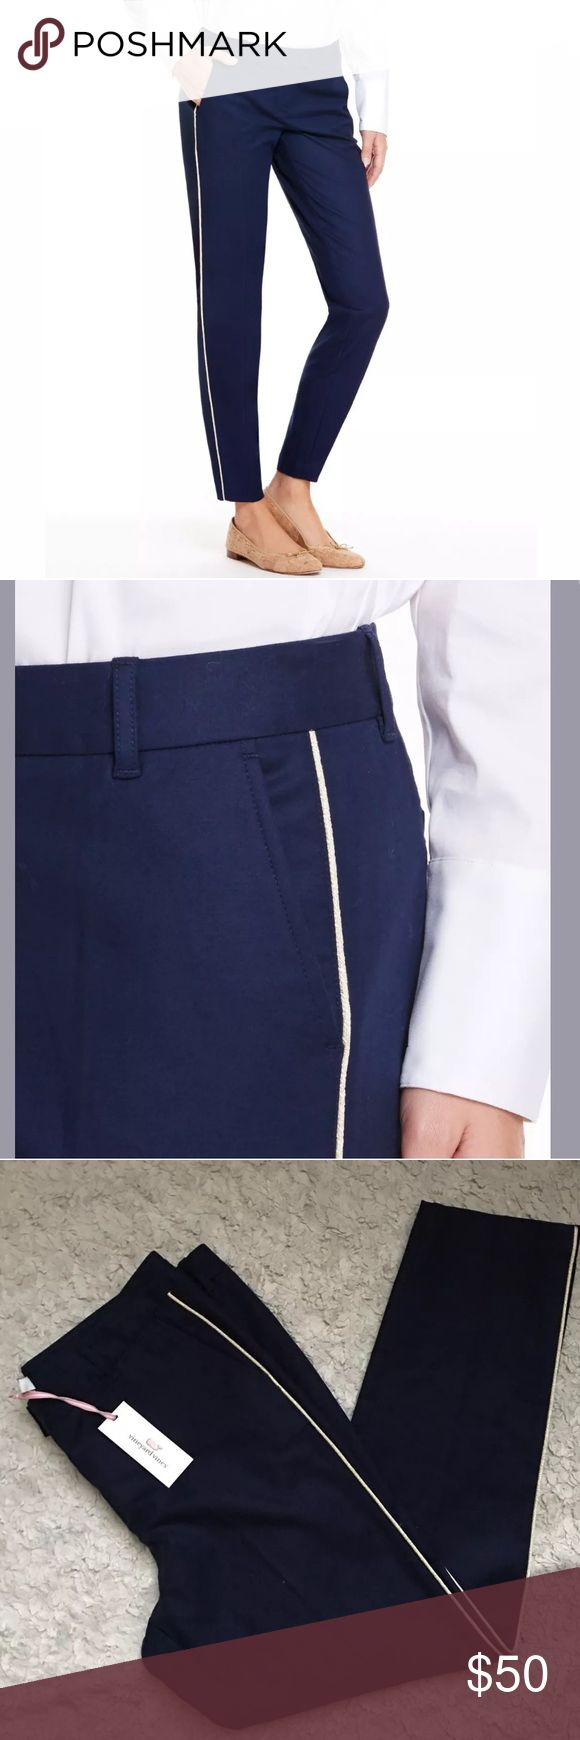 "New Vineyard Vines Ankle Pants Navy Blue Tuxedo 12 New women's Vineyard Vines Tuxedo Stripe ankle pants in Navy Blue. Size 12. So cute and perfect for work! Approximate measurements: Waist: 35"" Inseam: 28"" Rise: 10"" Leg opening: 12"" Vineyard Vines Pants Ankle & Cropped"